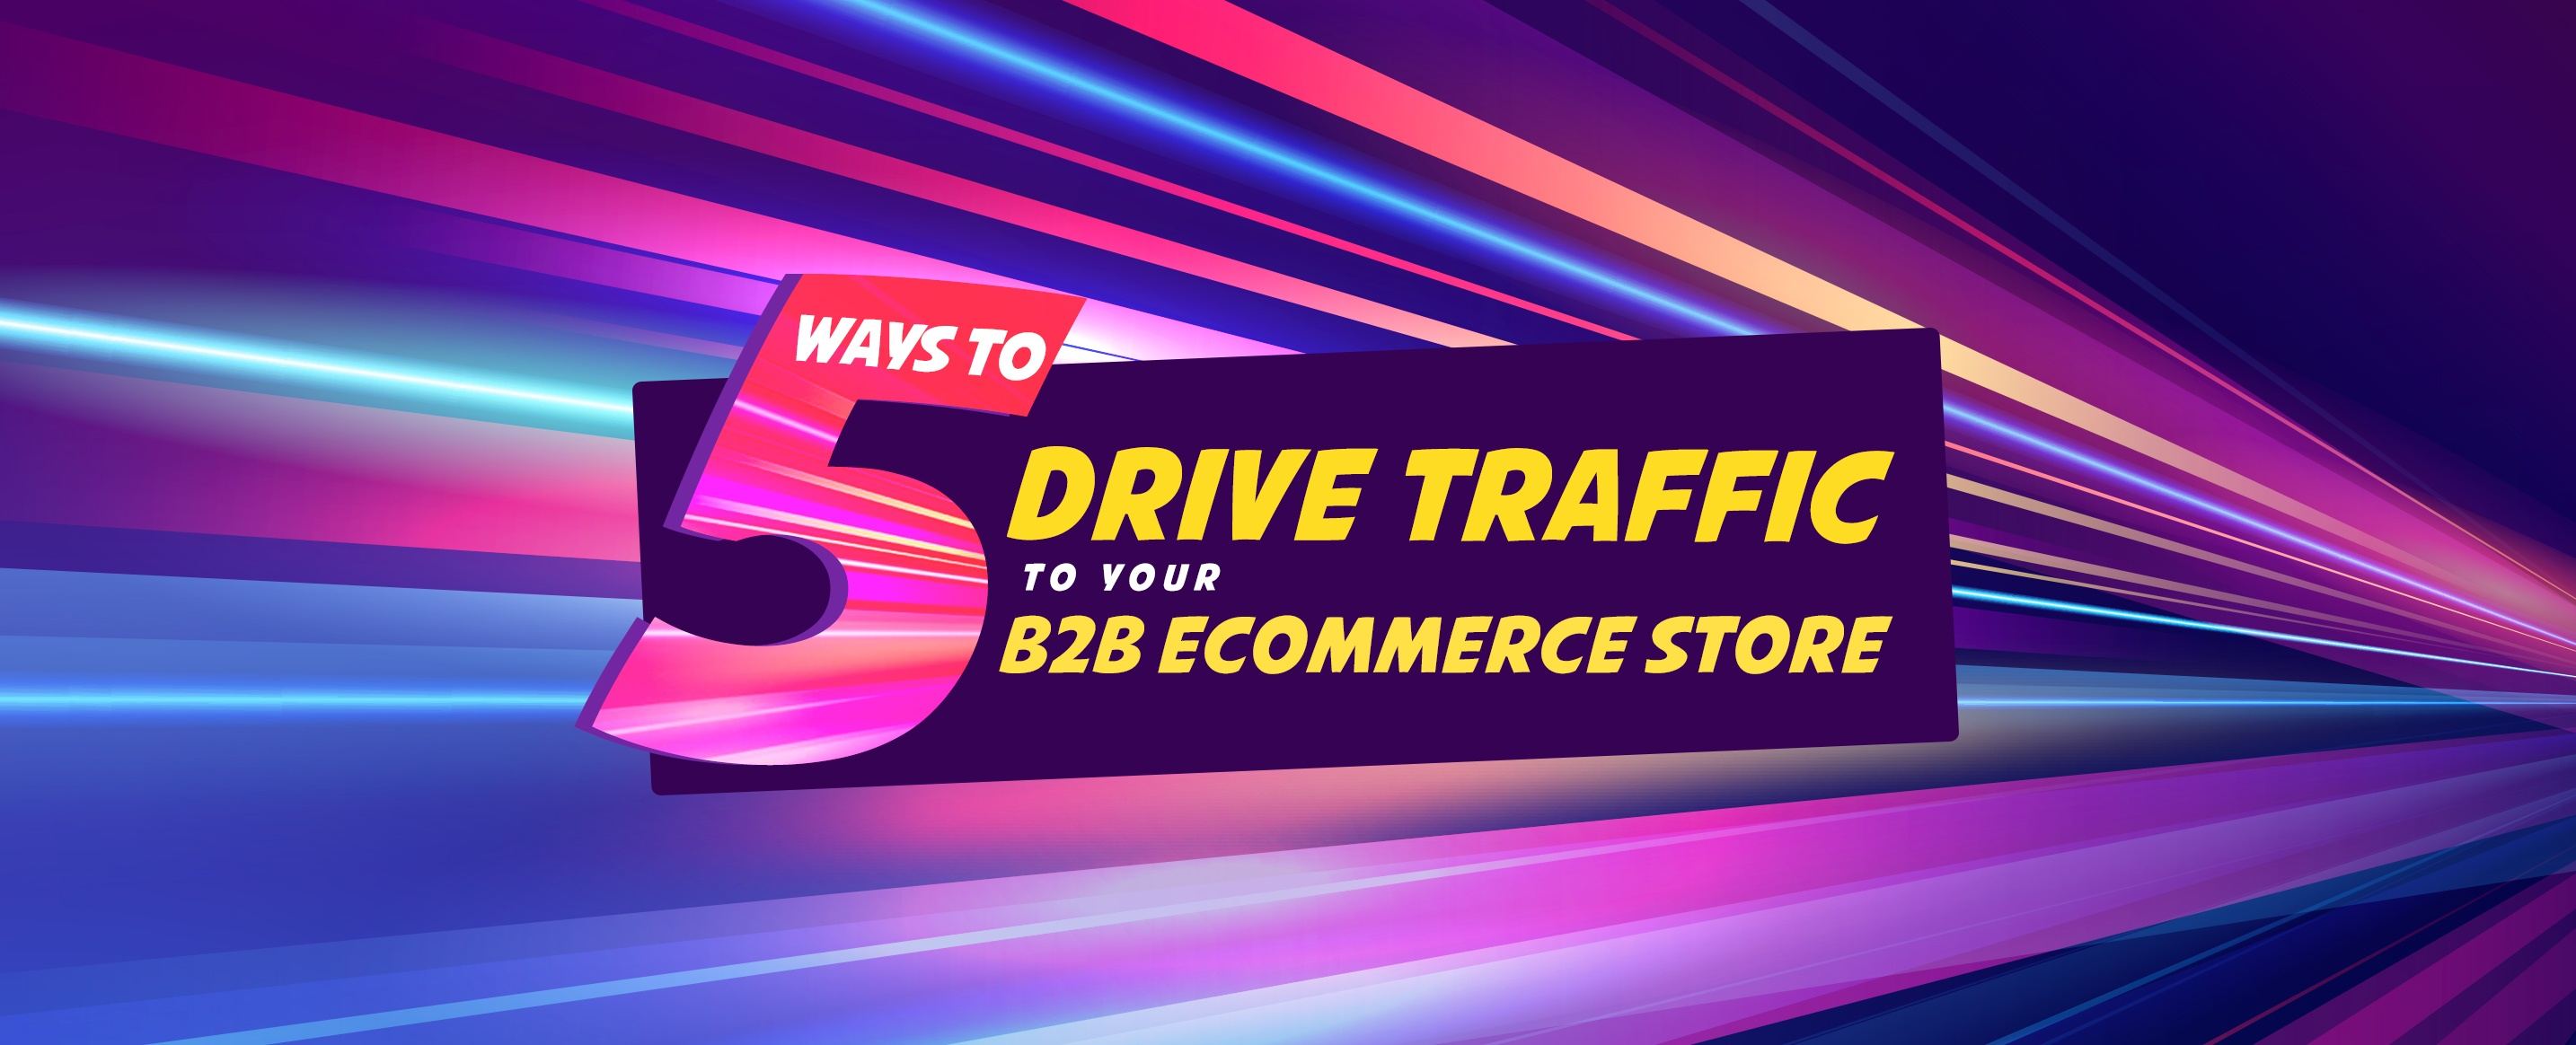 5-ways-to-drive-traffic-to-your-B2B-eCommerce-store